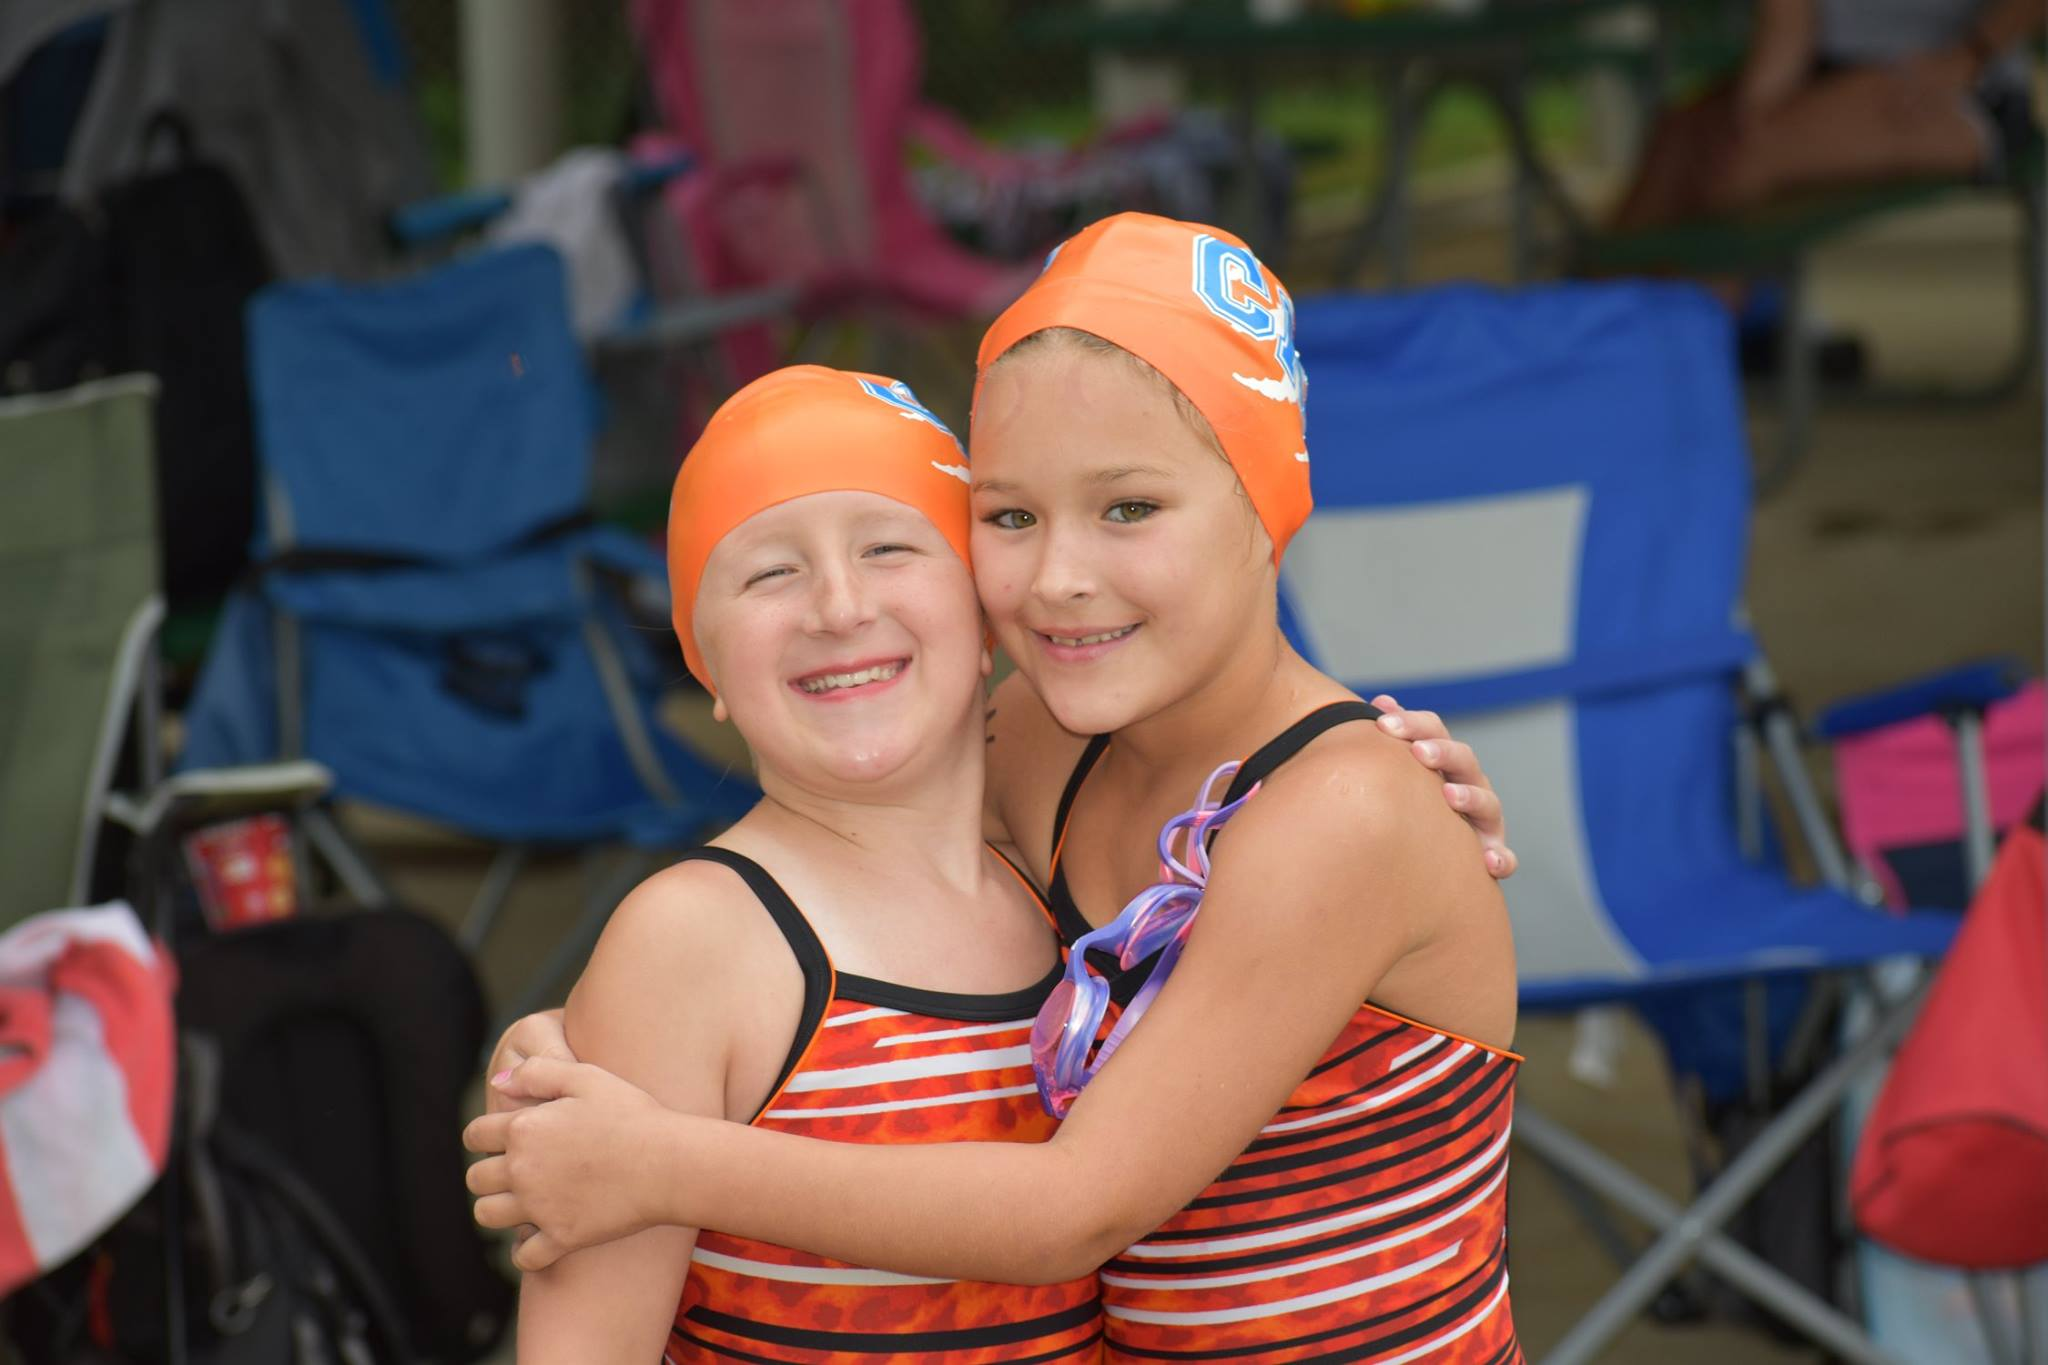 Two girls on swim team